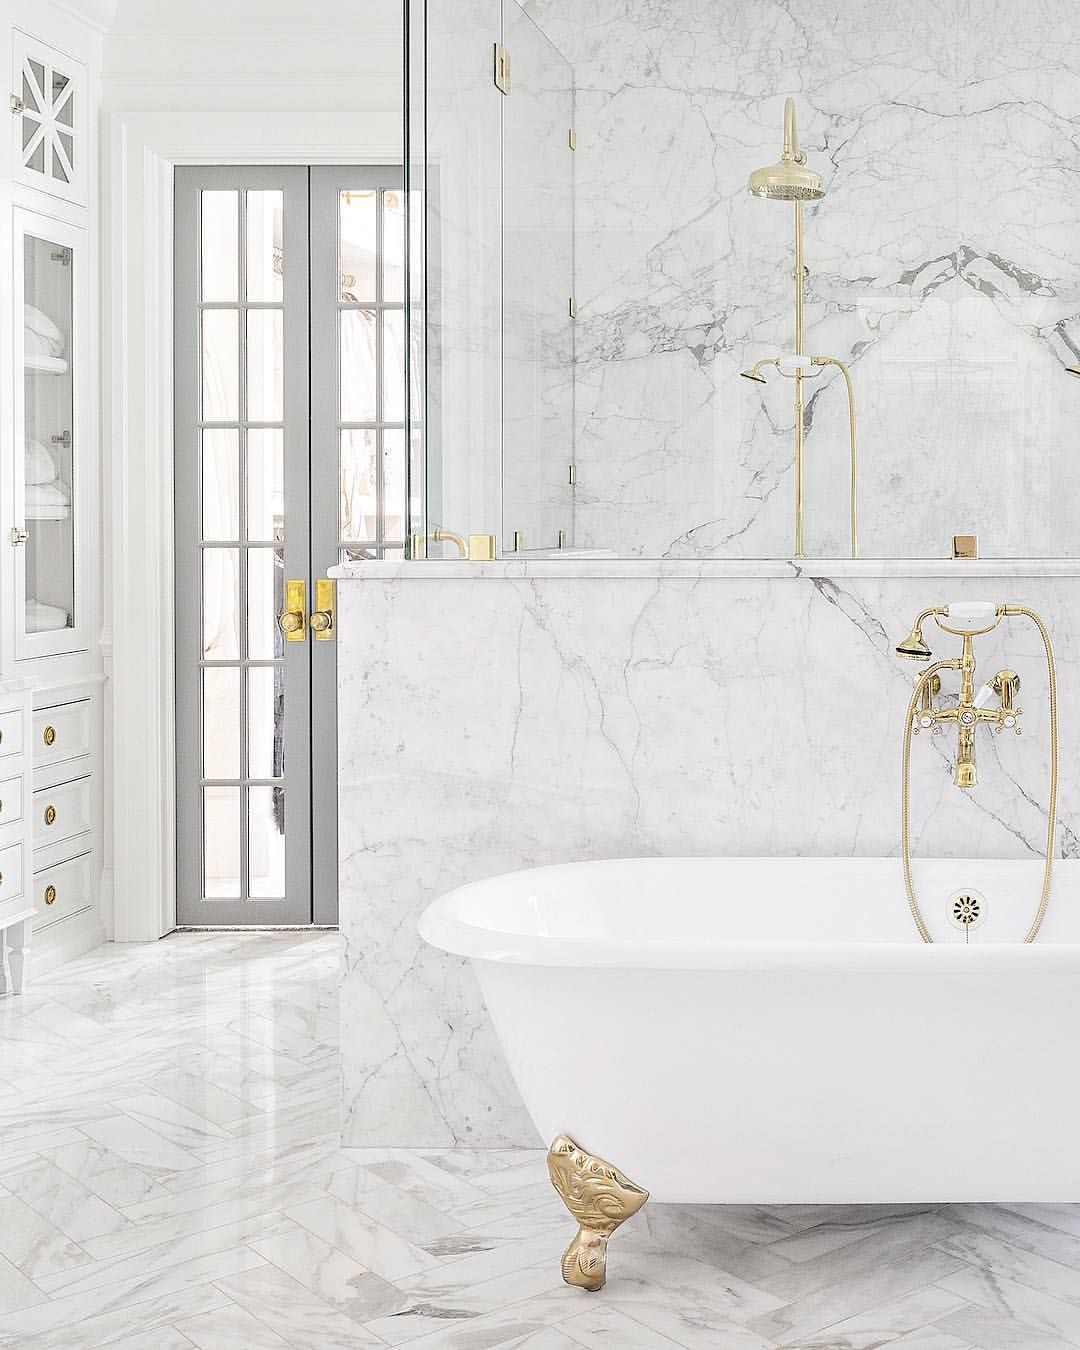 Grey And White Marble Bathroom: Marble Bathroom With White And Brass Claw-foot Tub